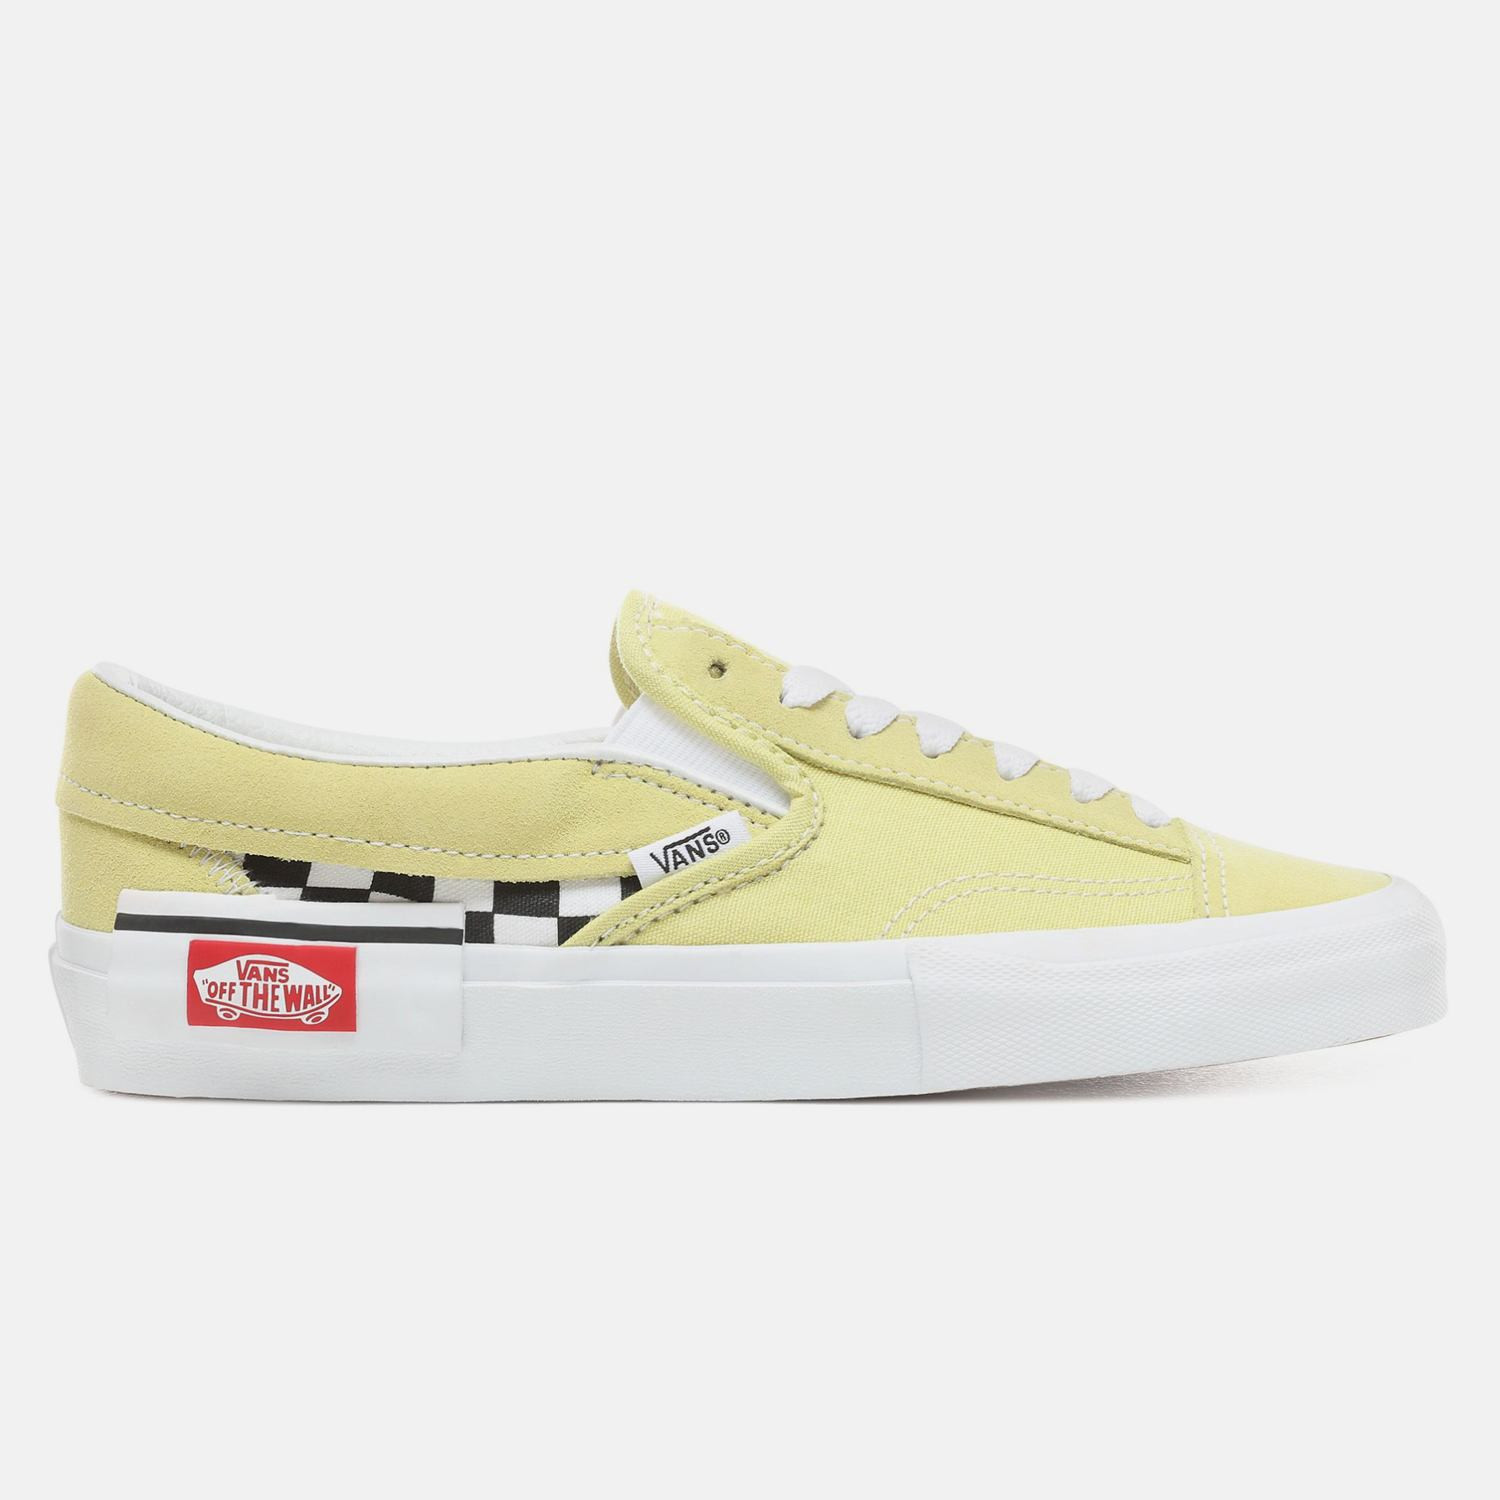 Vans Checkerboard Slip-On Cap Deconstructed - Γυναικεία Παπούτσια (9000026991_32921)